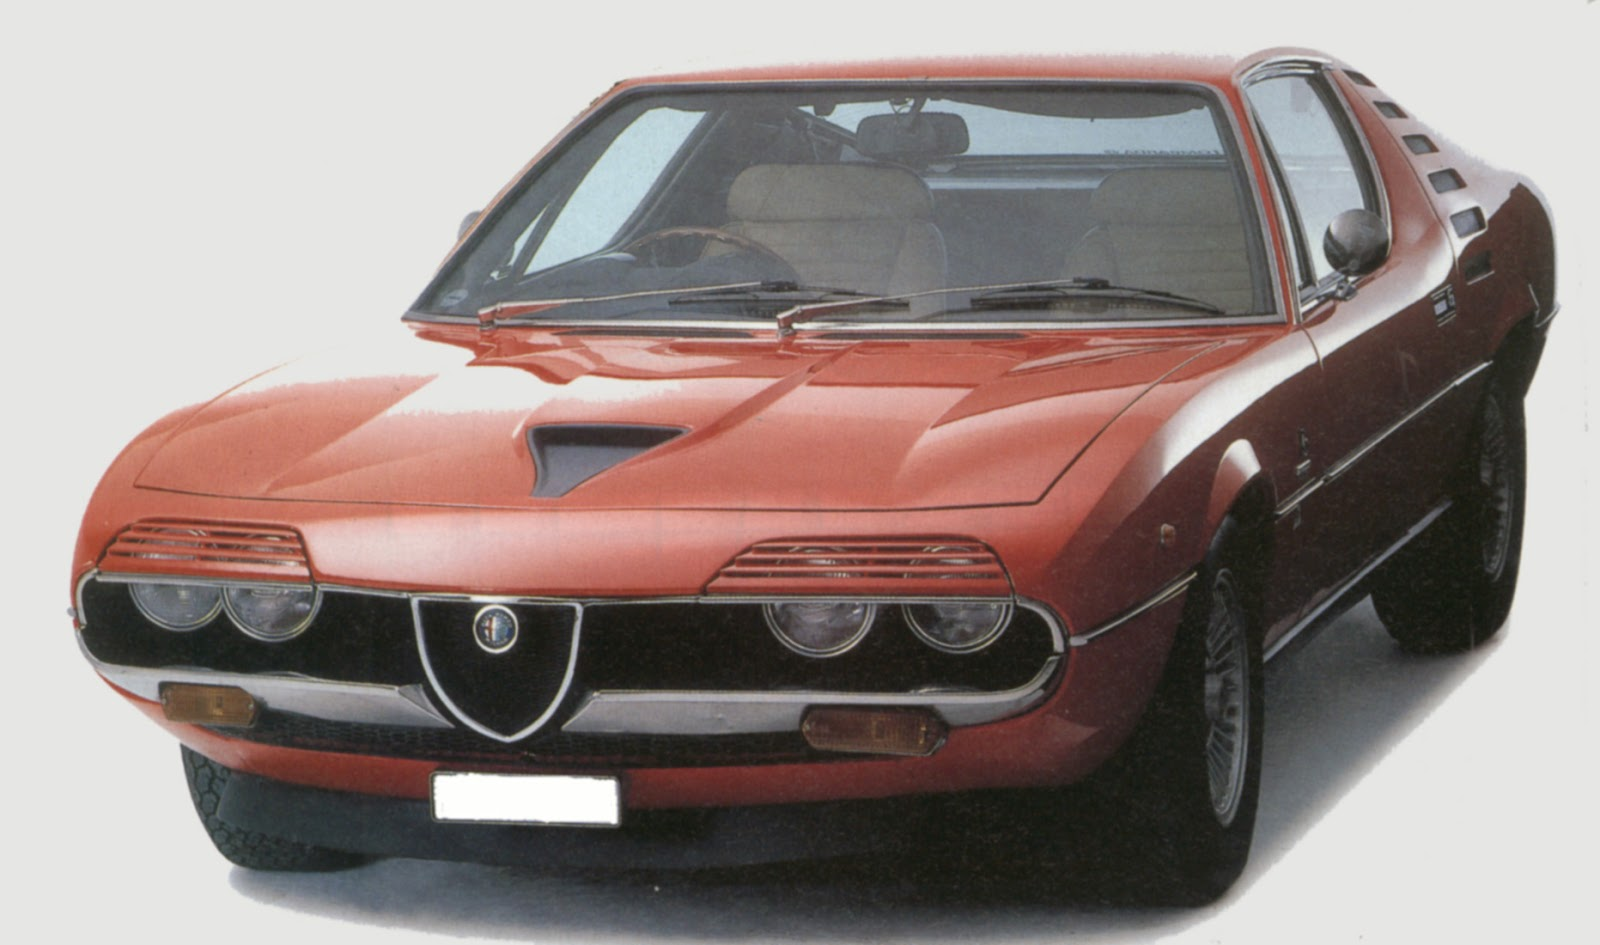 hight resolution of produced from 1971 to 1977 in limited numbers the montreal had a detuned lemans engine red hot italians alfa romeo